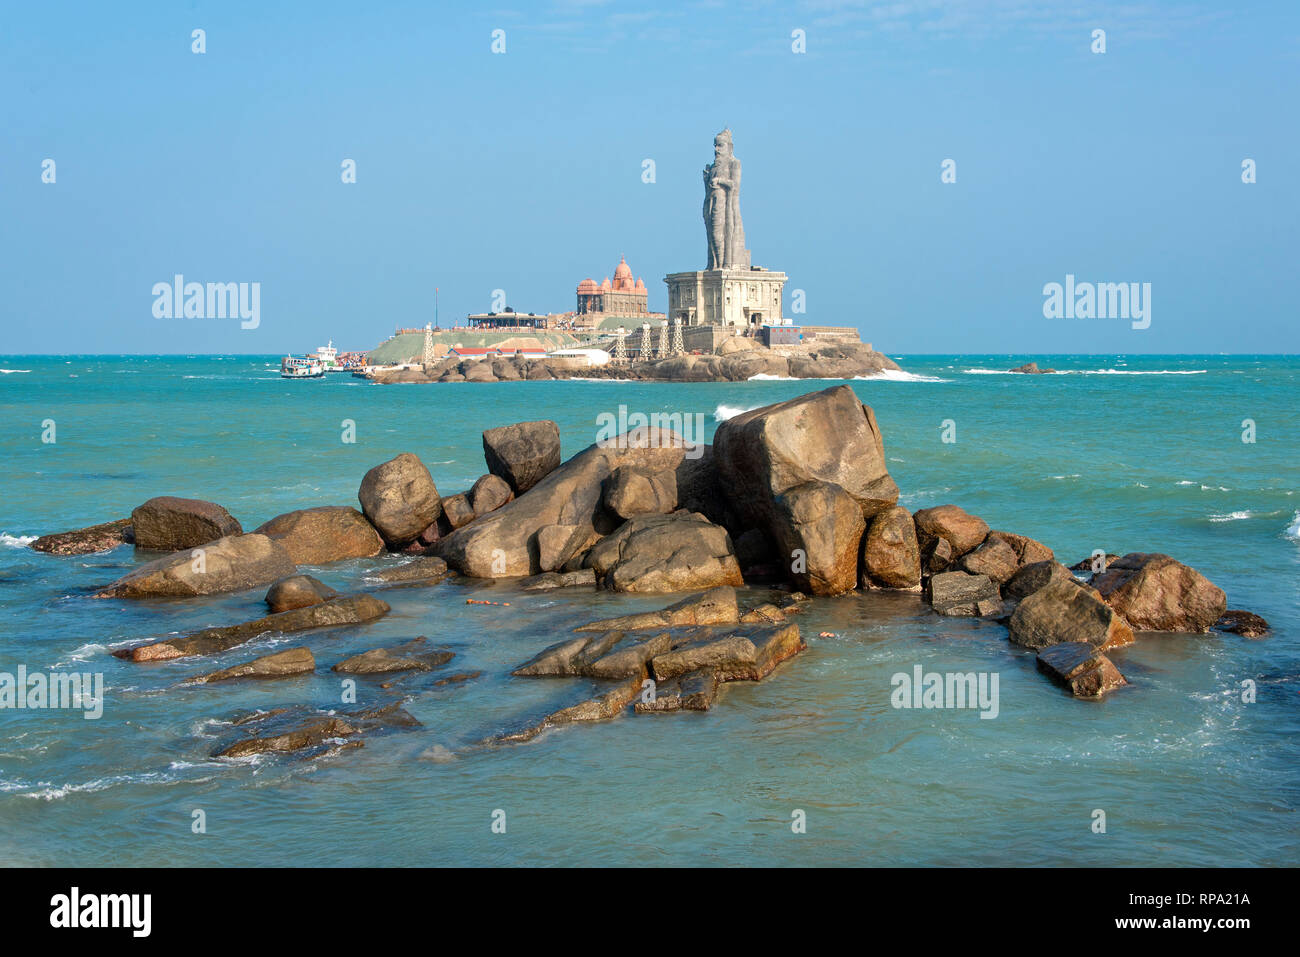 A view of the Vivekananda Rock Memorial  and Thiruvalluvar Statue near the town of Kanyakumari on a sunny day with blue sky. - Stock Image